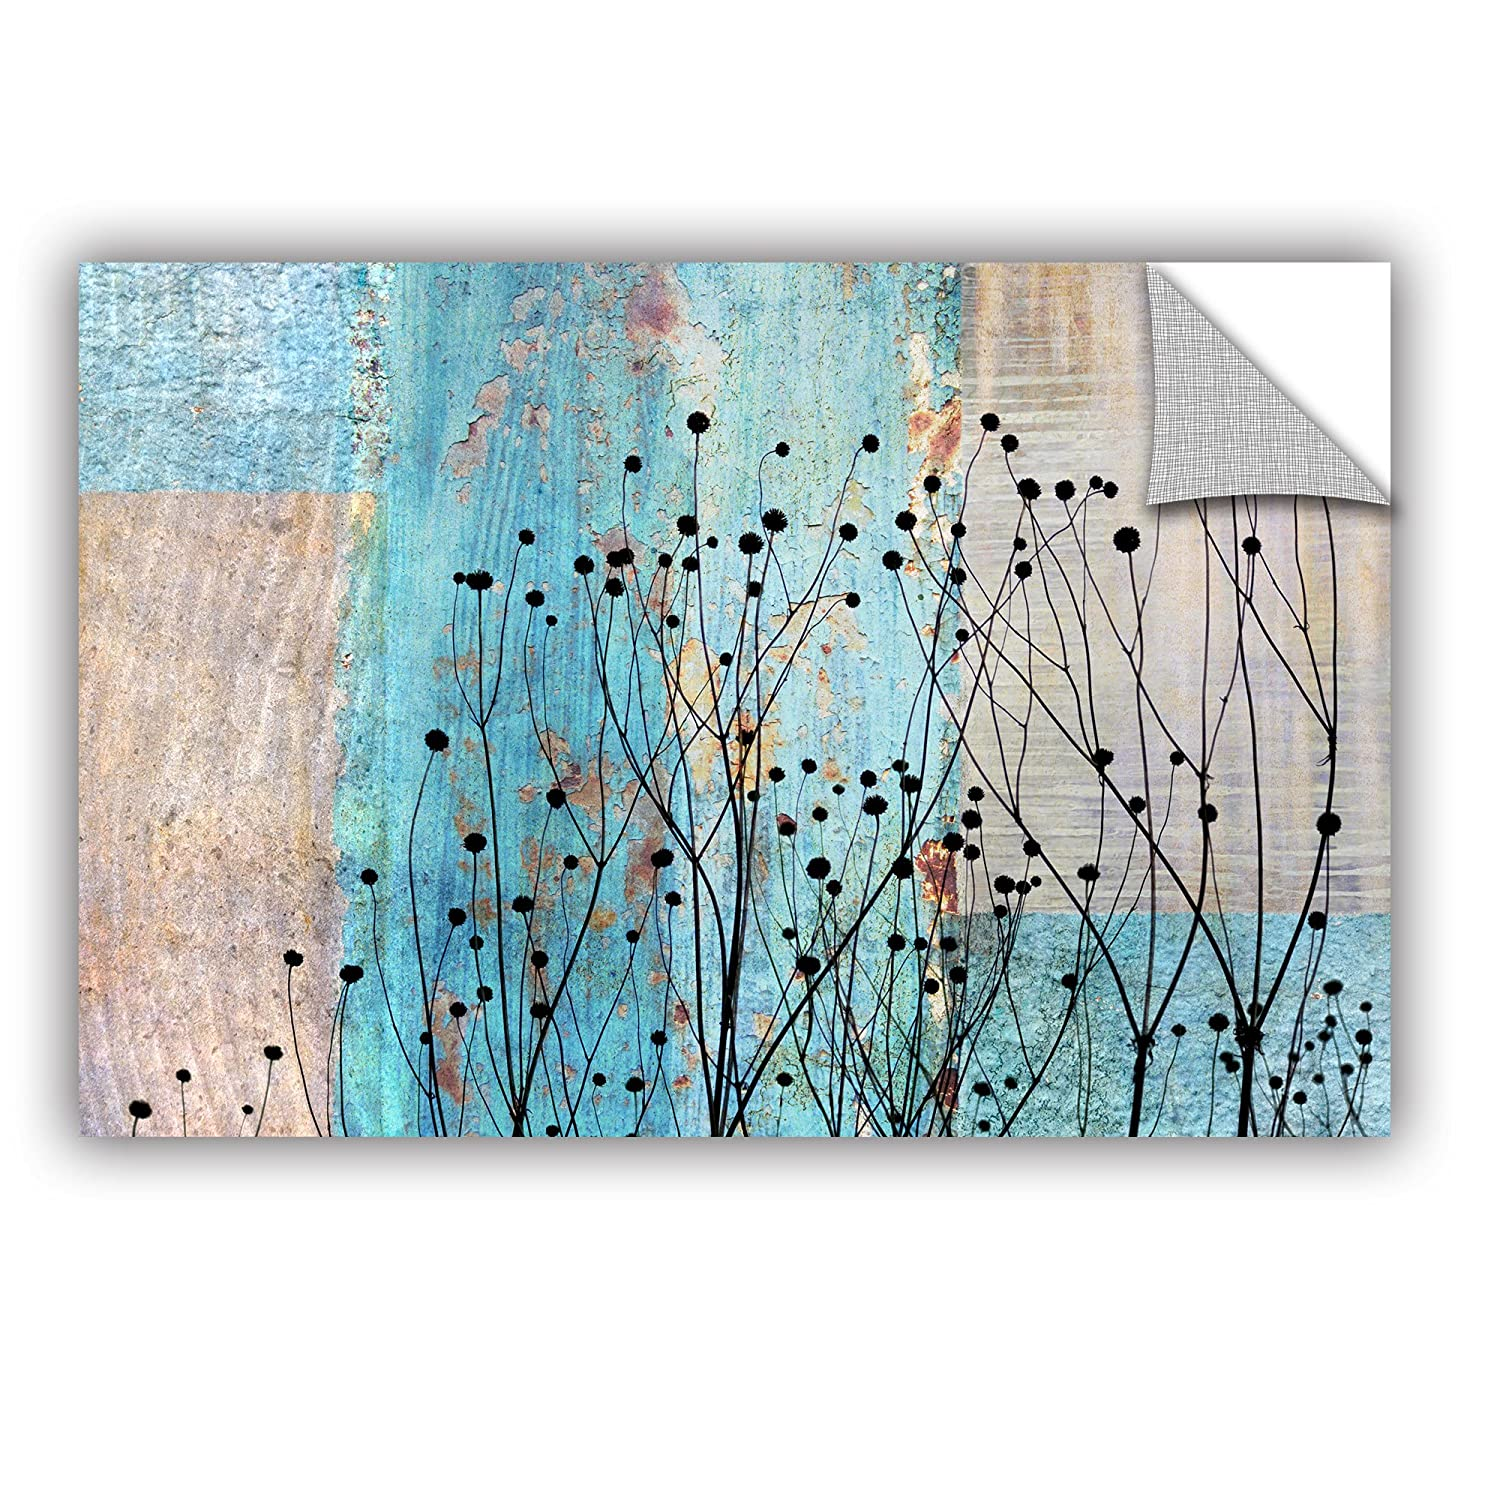 ArtWall Cora Nieles Dark Silhouette III Appeelz Removable Graphic Wall Art 24 by 36